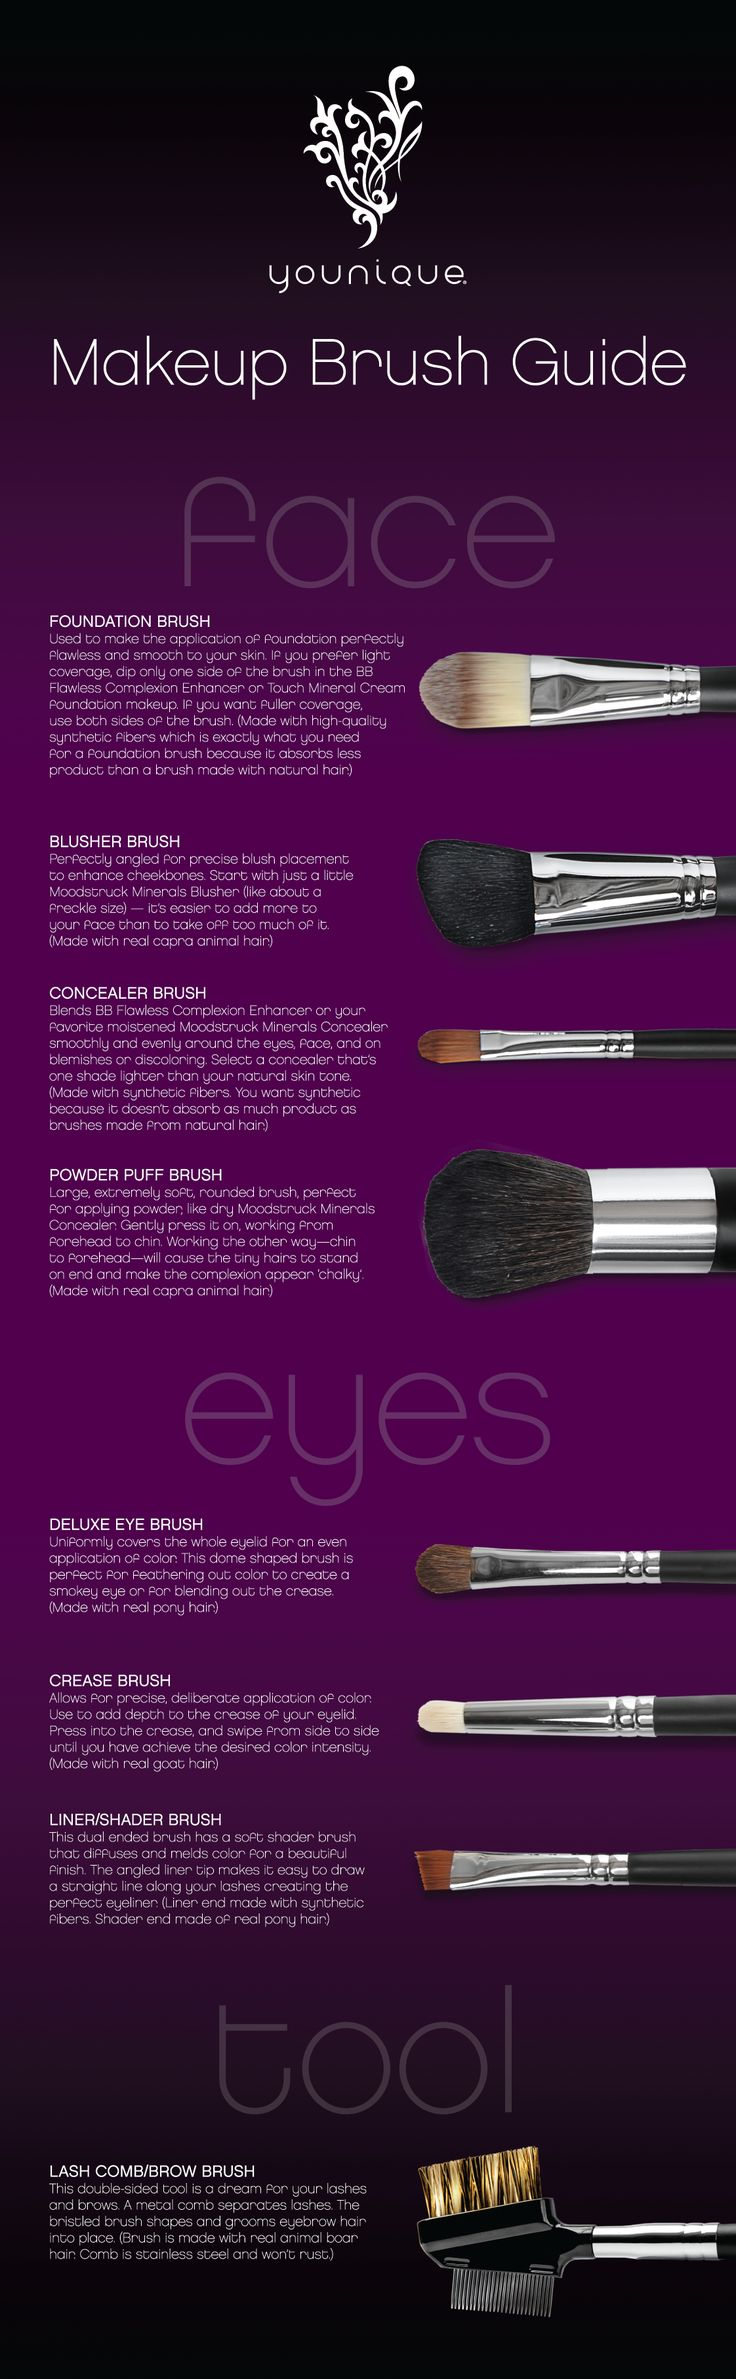 Ever wonder what each makeup brush is for? This infographic tells you the purpose of each brush and some great makeup application tips.